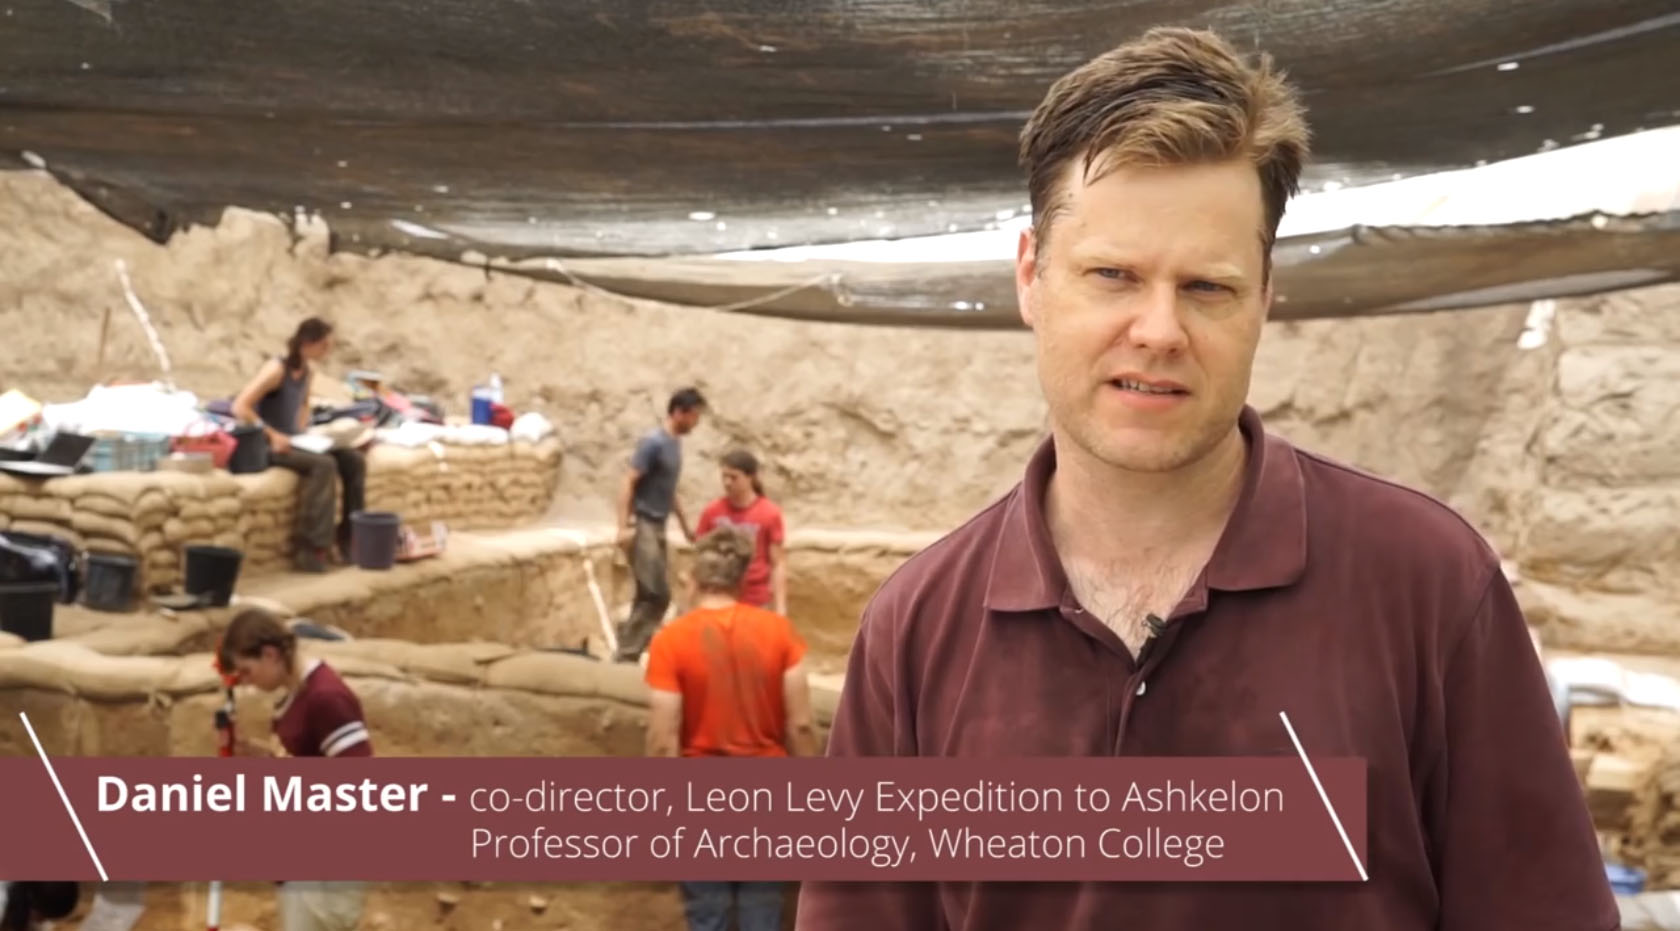 Daniel Master, Professor of Archaeology at Wheaton College co-direct the Leon Levy Expedition to Ashkelon with Lawrence Stager, professor of the Archaelogy of Israel (Emeritus) Harvard University <em>(YouTube Capture)</em>